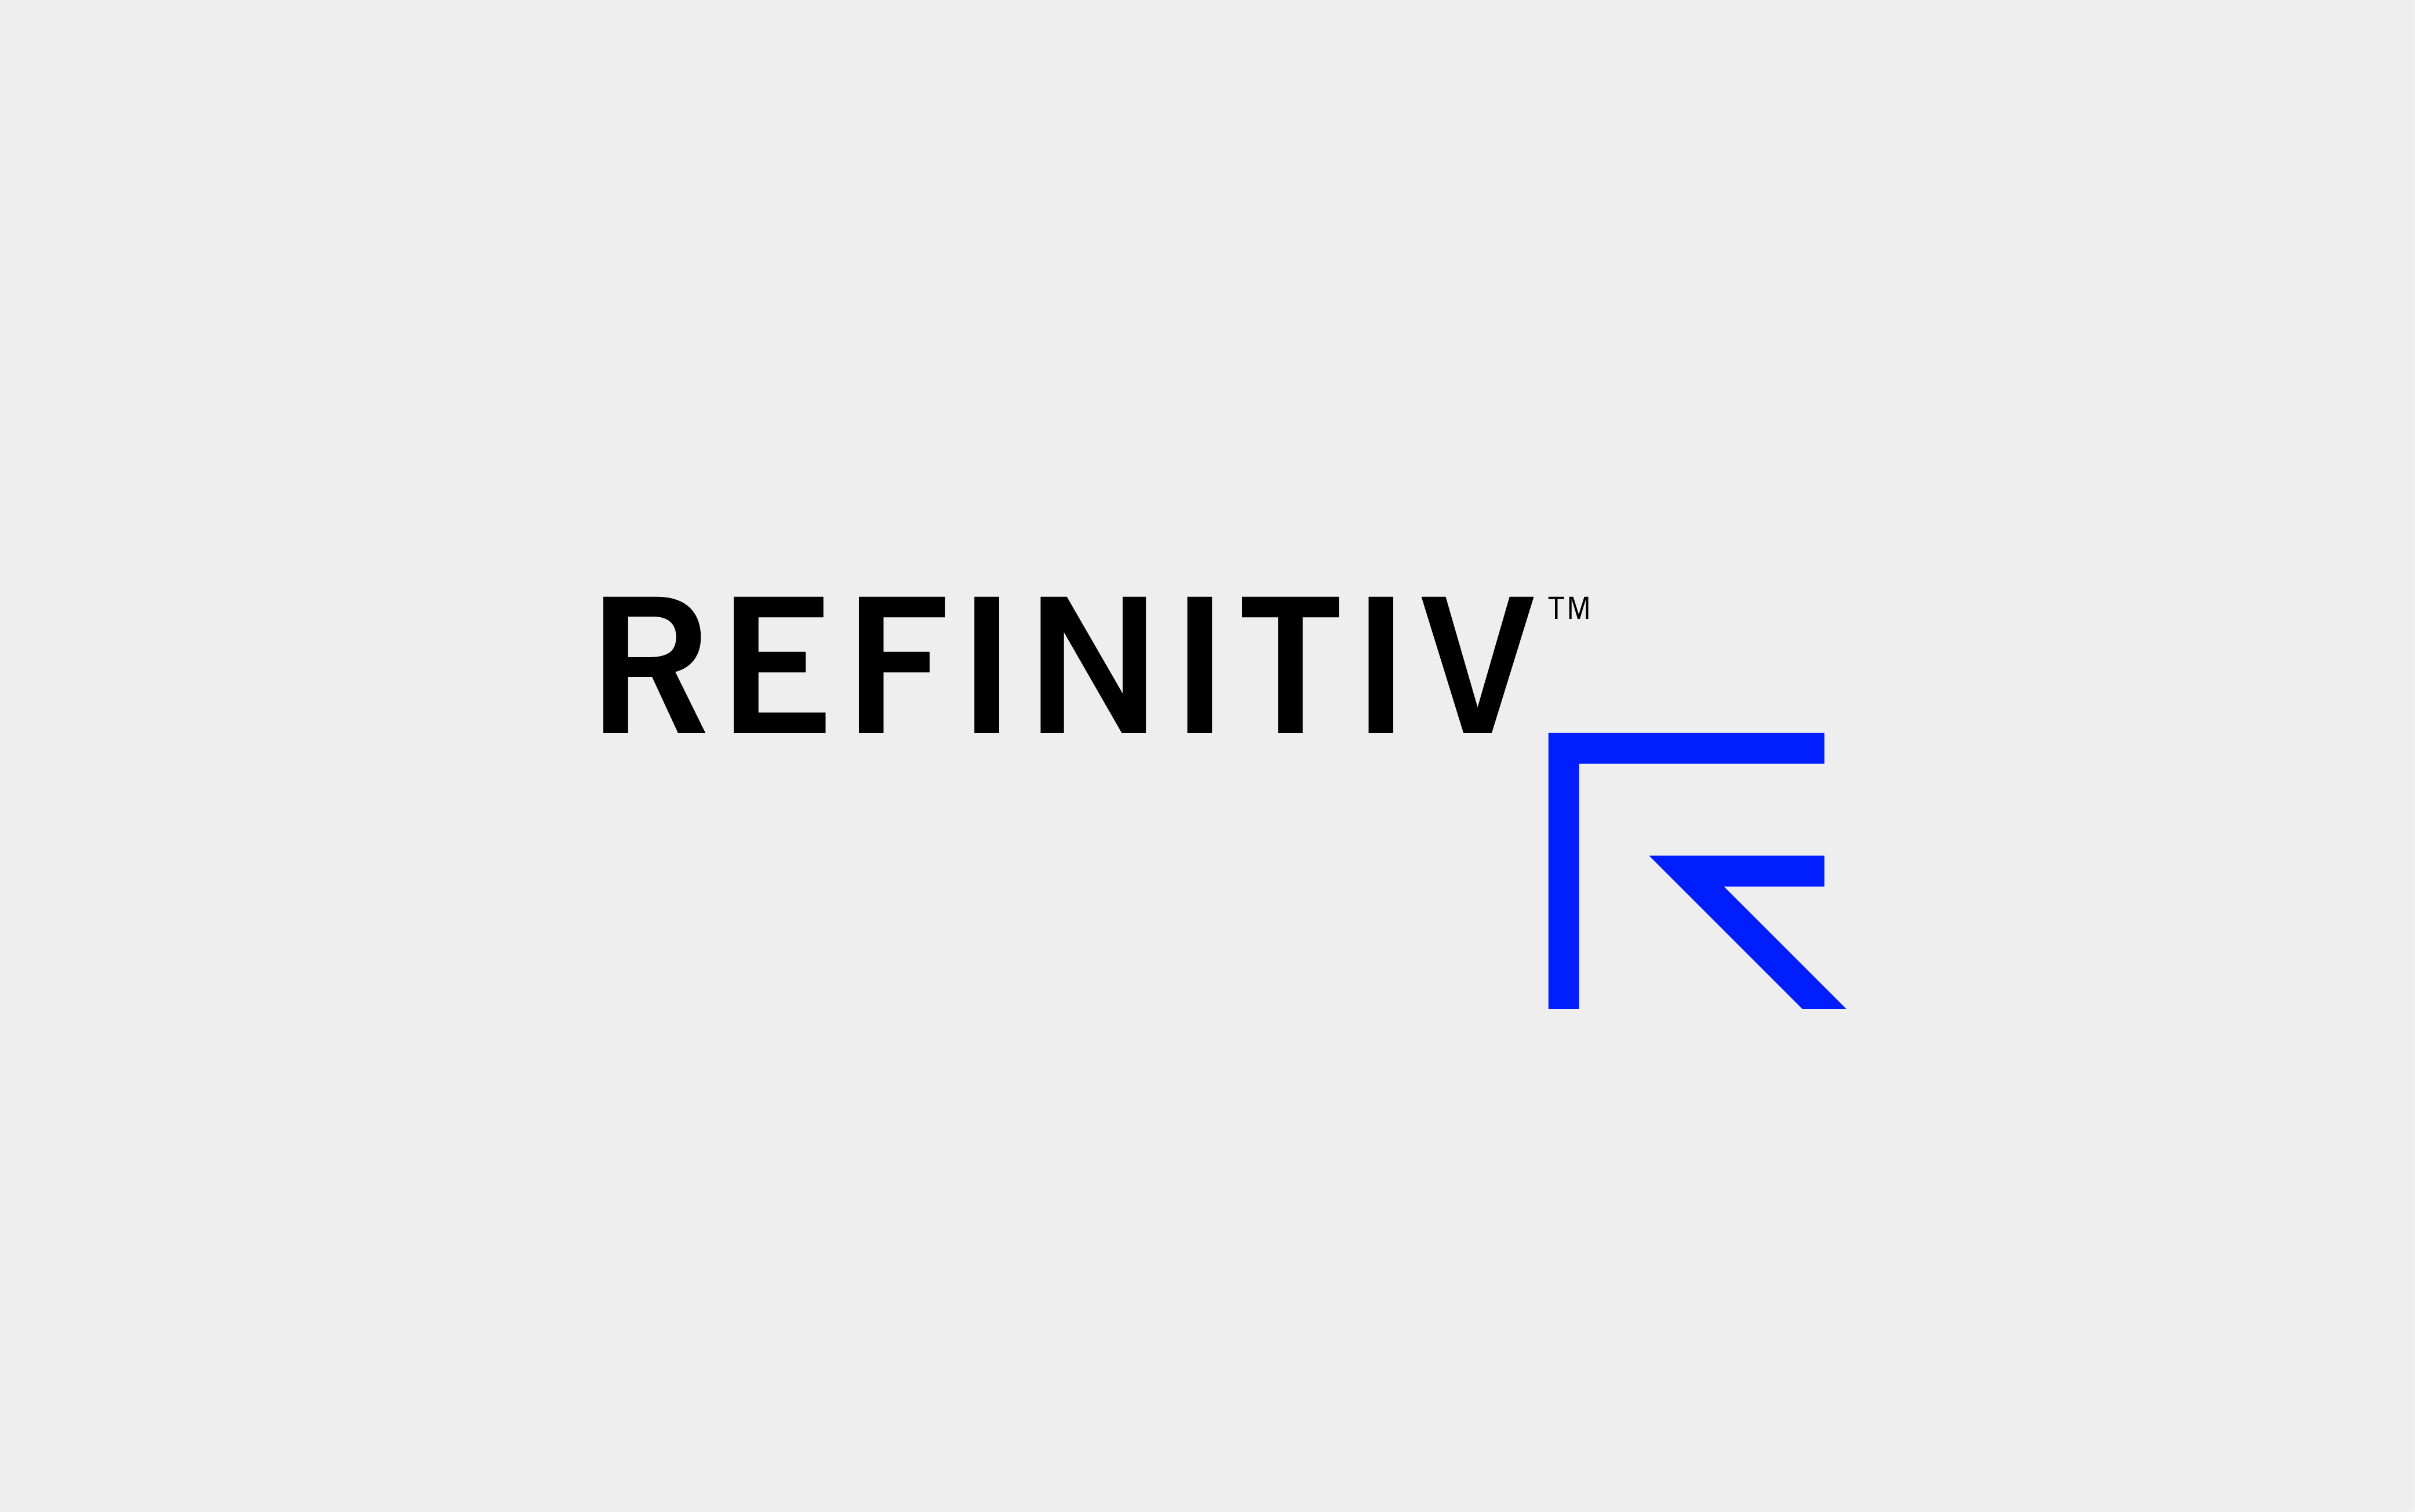 Refinitiv acquires Advisor Software Inc. further expanding its digital capabilities for the wealth management industry